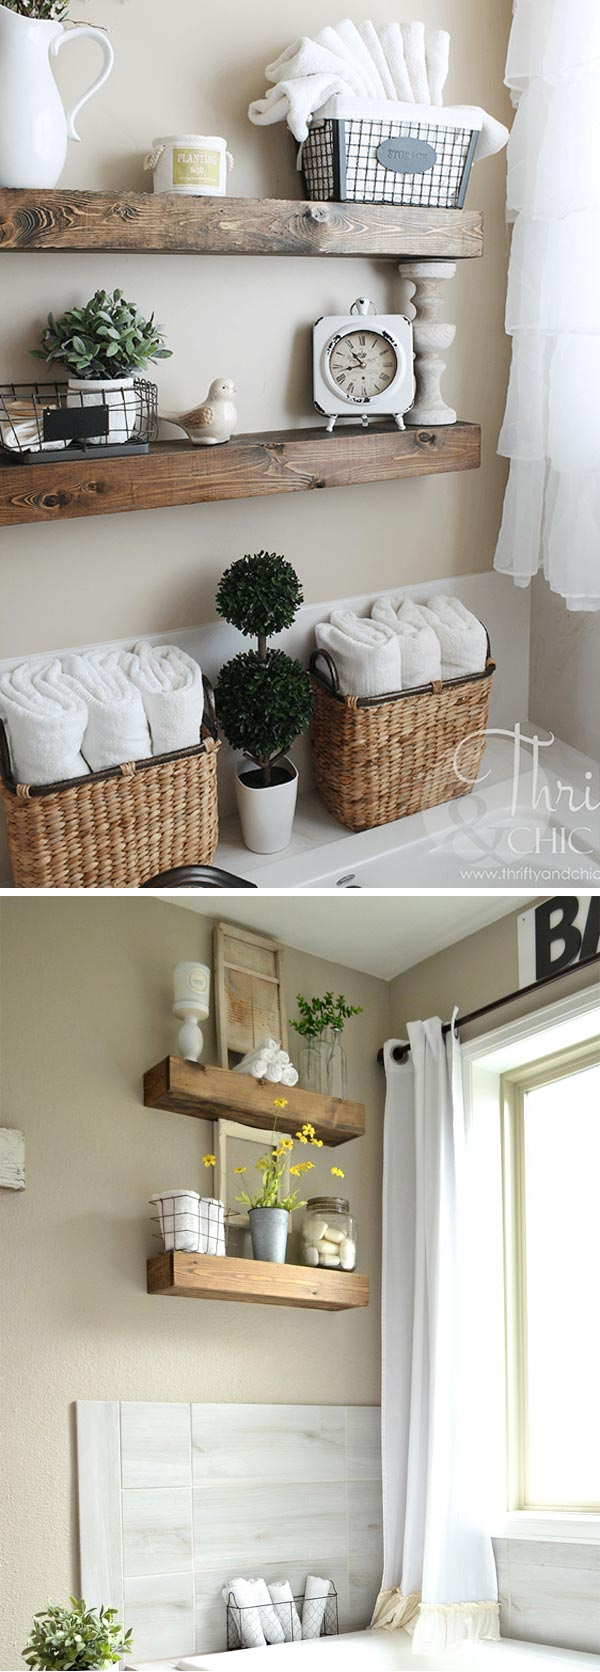 4. Create A Cute Floating Exposed Shelving For Your Bathroom: